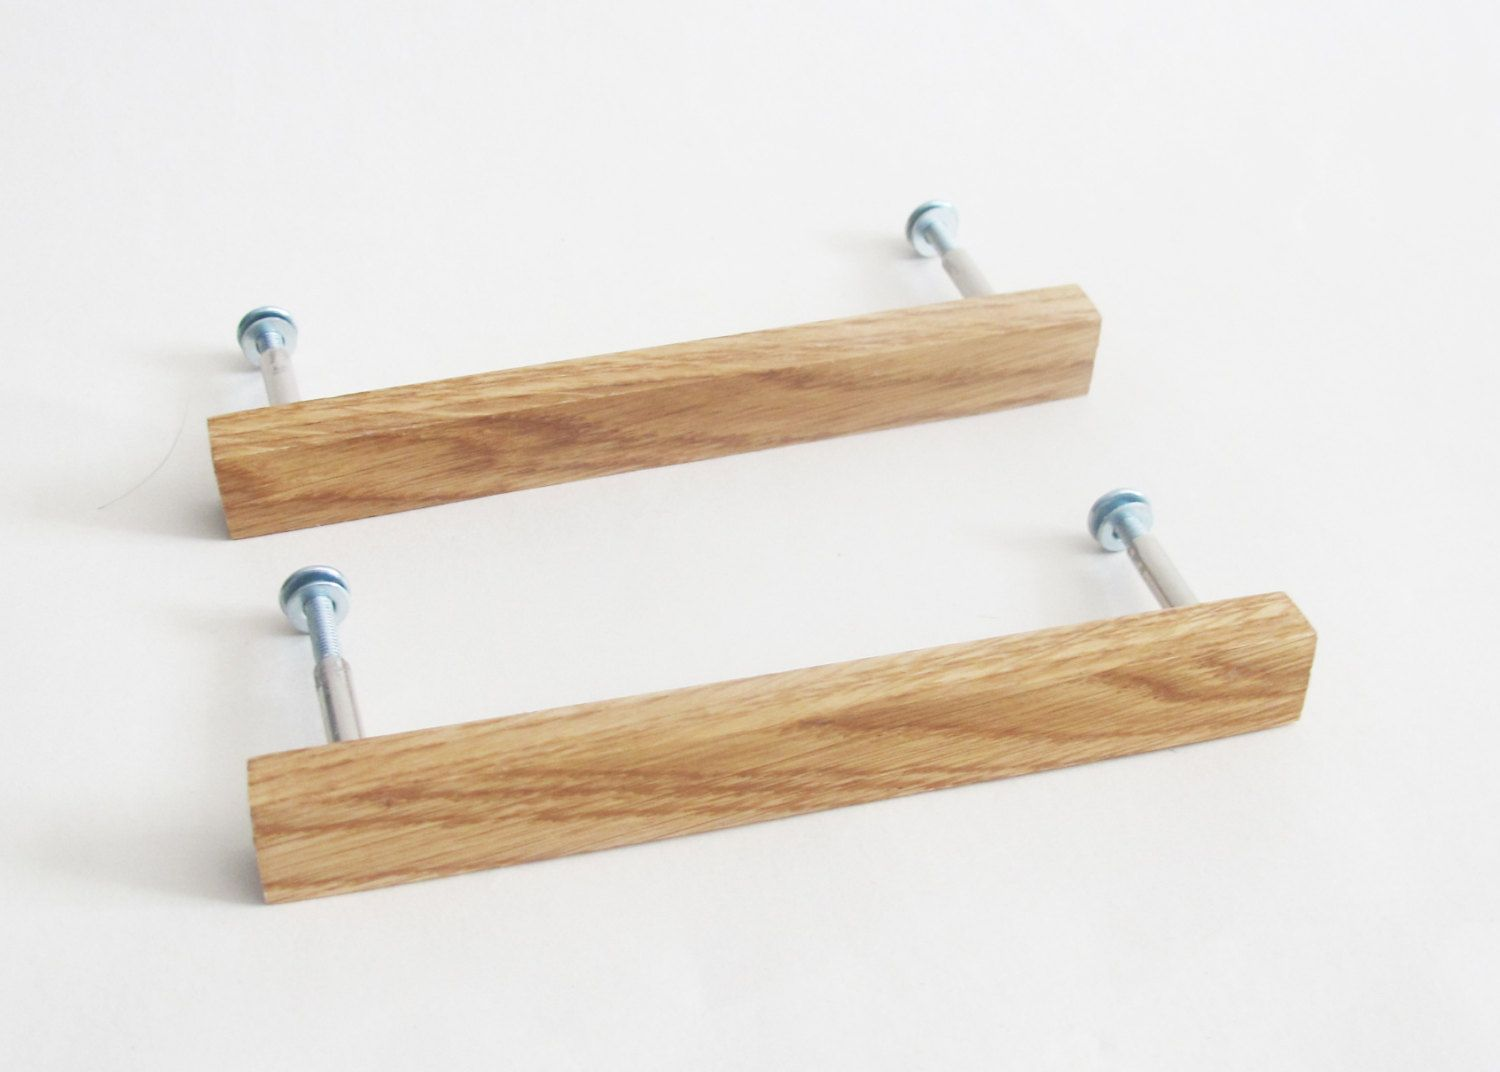 Wooden drawer pulls set of 2 oak wood drawer handles modern cabinet pulls rustic home decor by vishemir on etsy